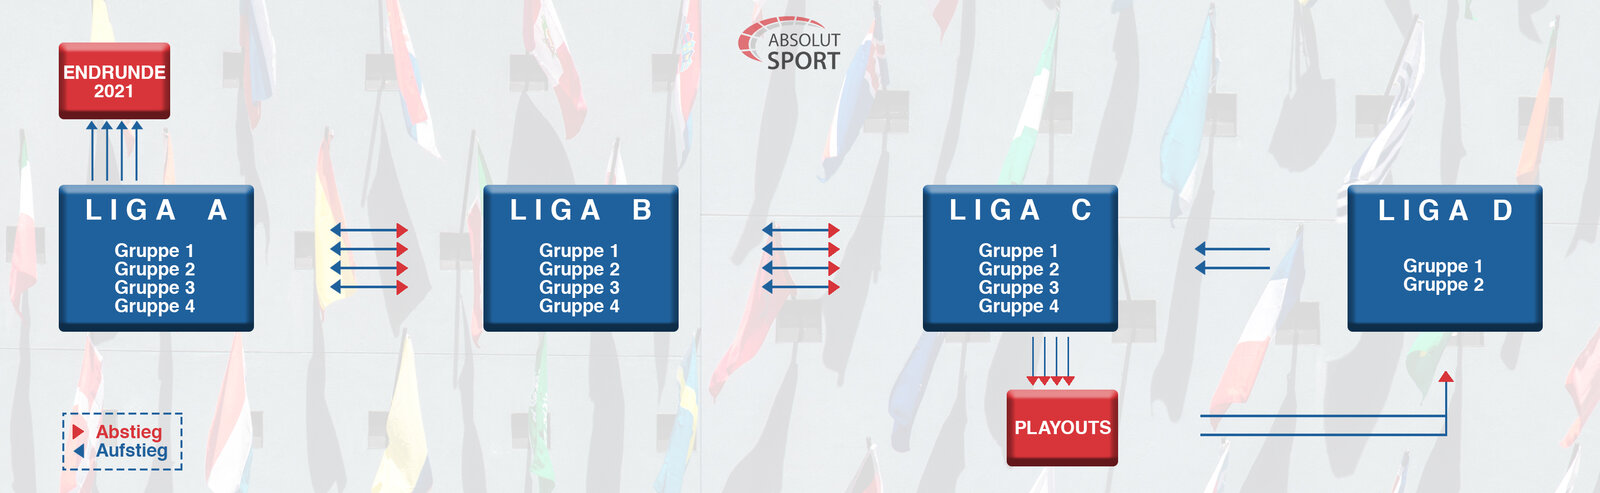 Nations League Ligen und Gruppen